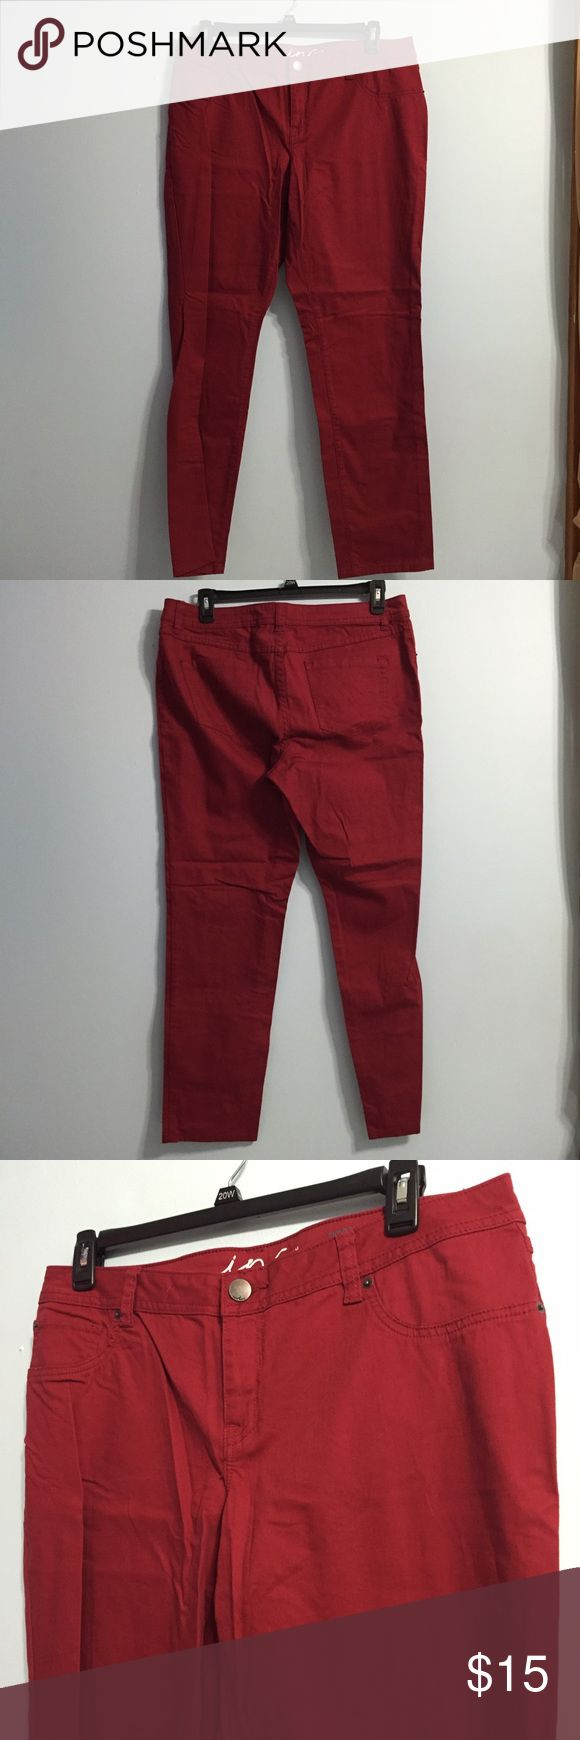 """INC. Red Curvy Fit Skinny Jeans (16) INC. Denim Red Curvy Fit Skinny Jeans in size 16.   Features: Functional pockets on back.  Button and zip close.  Belt loops.   31"""" inseam 10"""" rise INC International Concepts Jeans Skinny"""